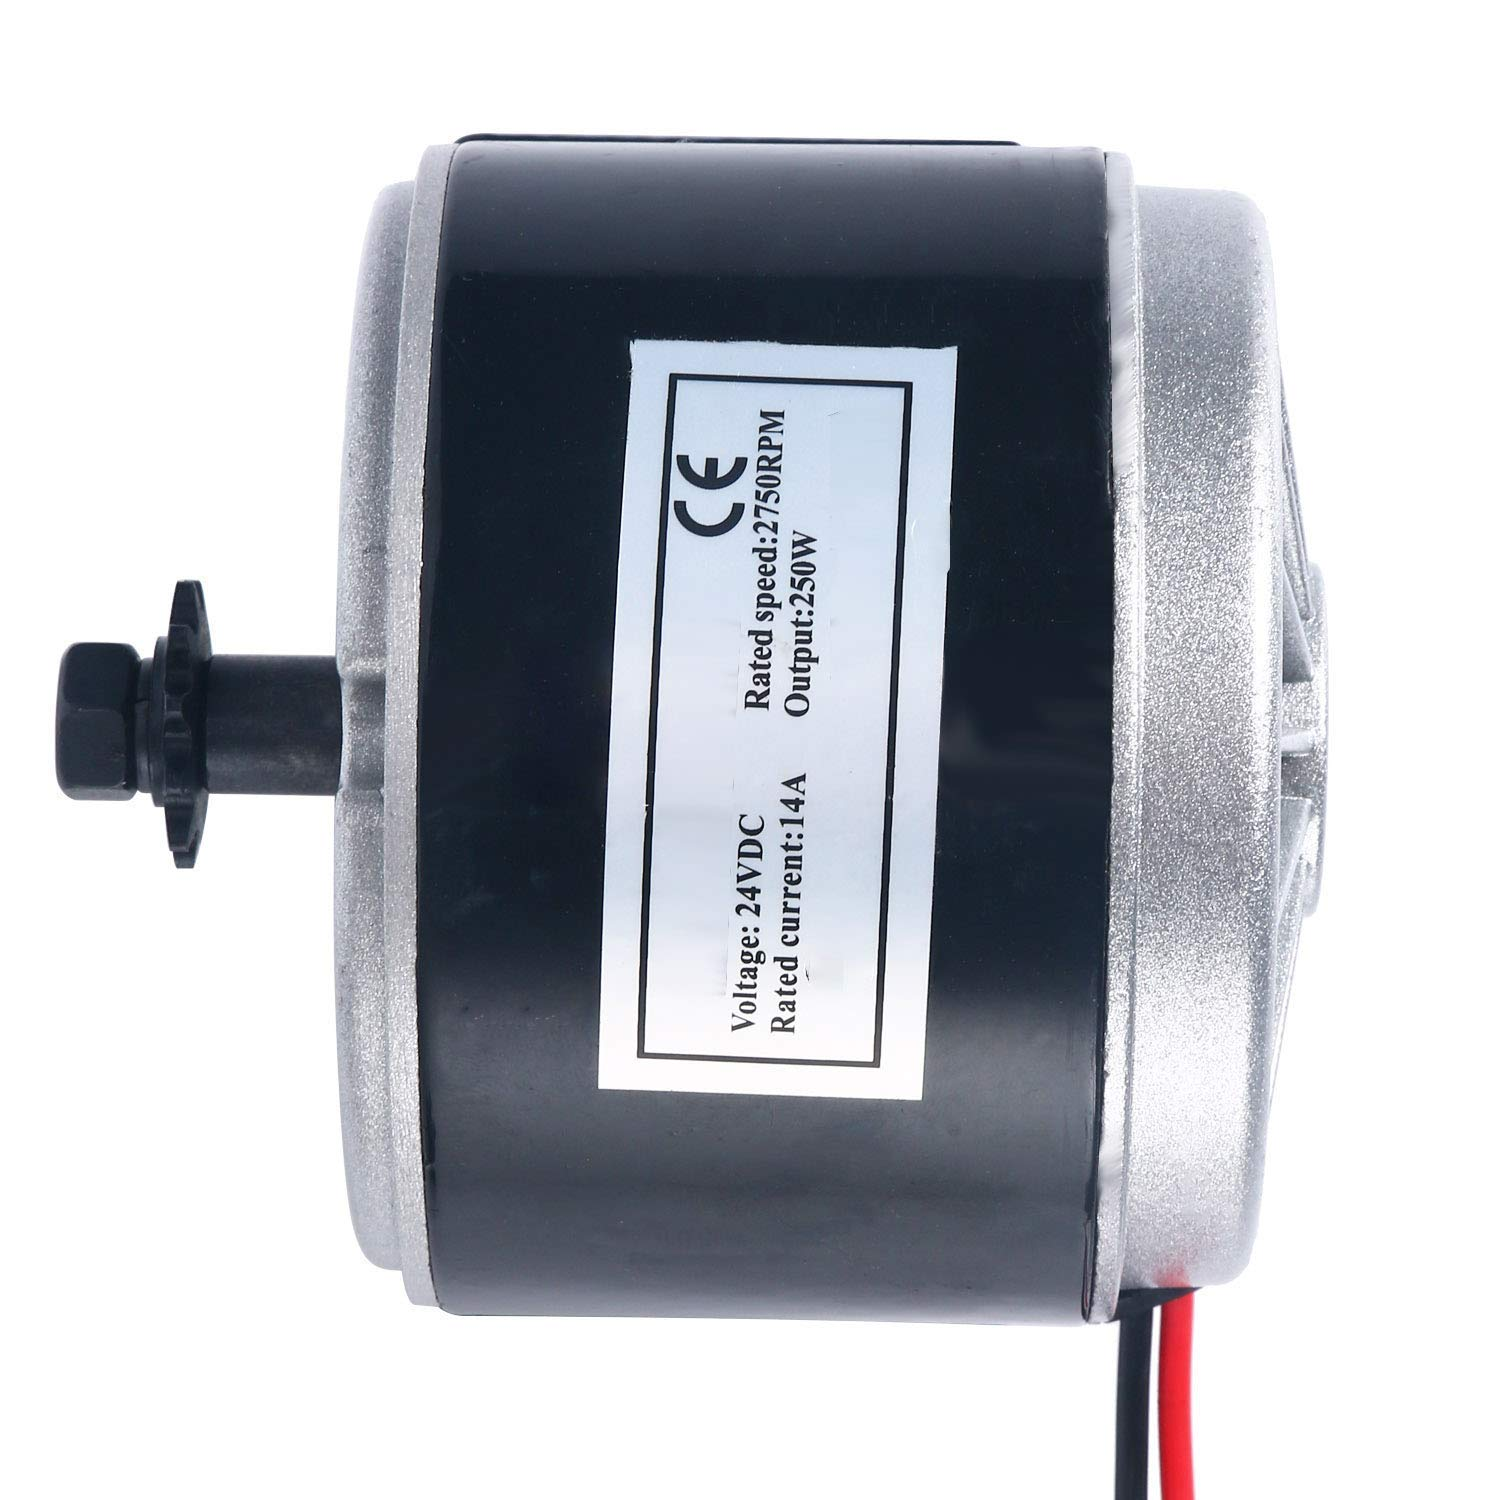 YaeTek 24V Electric Motor Brushed 250W 2750RPM Chain for E Scooter Drive Speed Control by Yaegoo